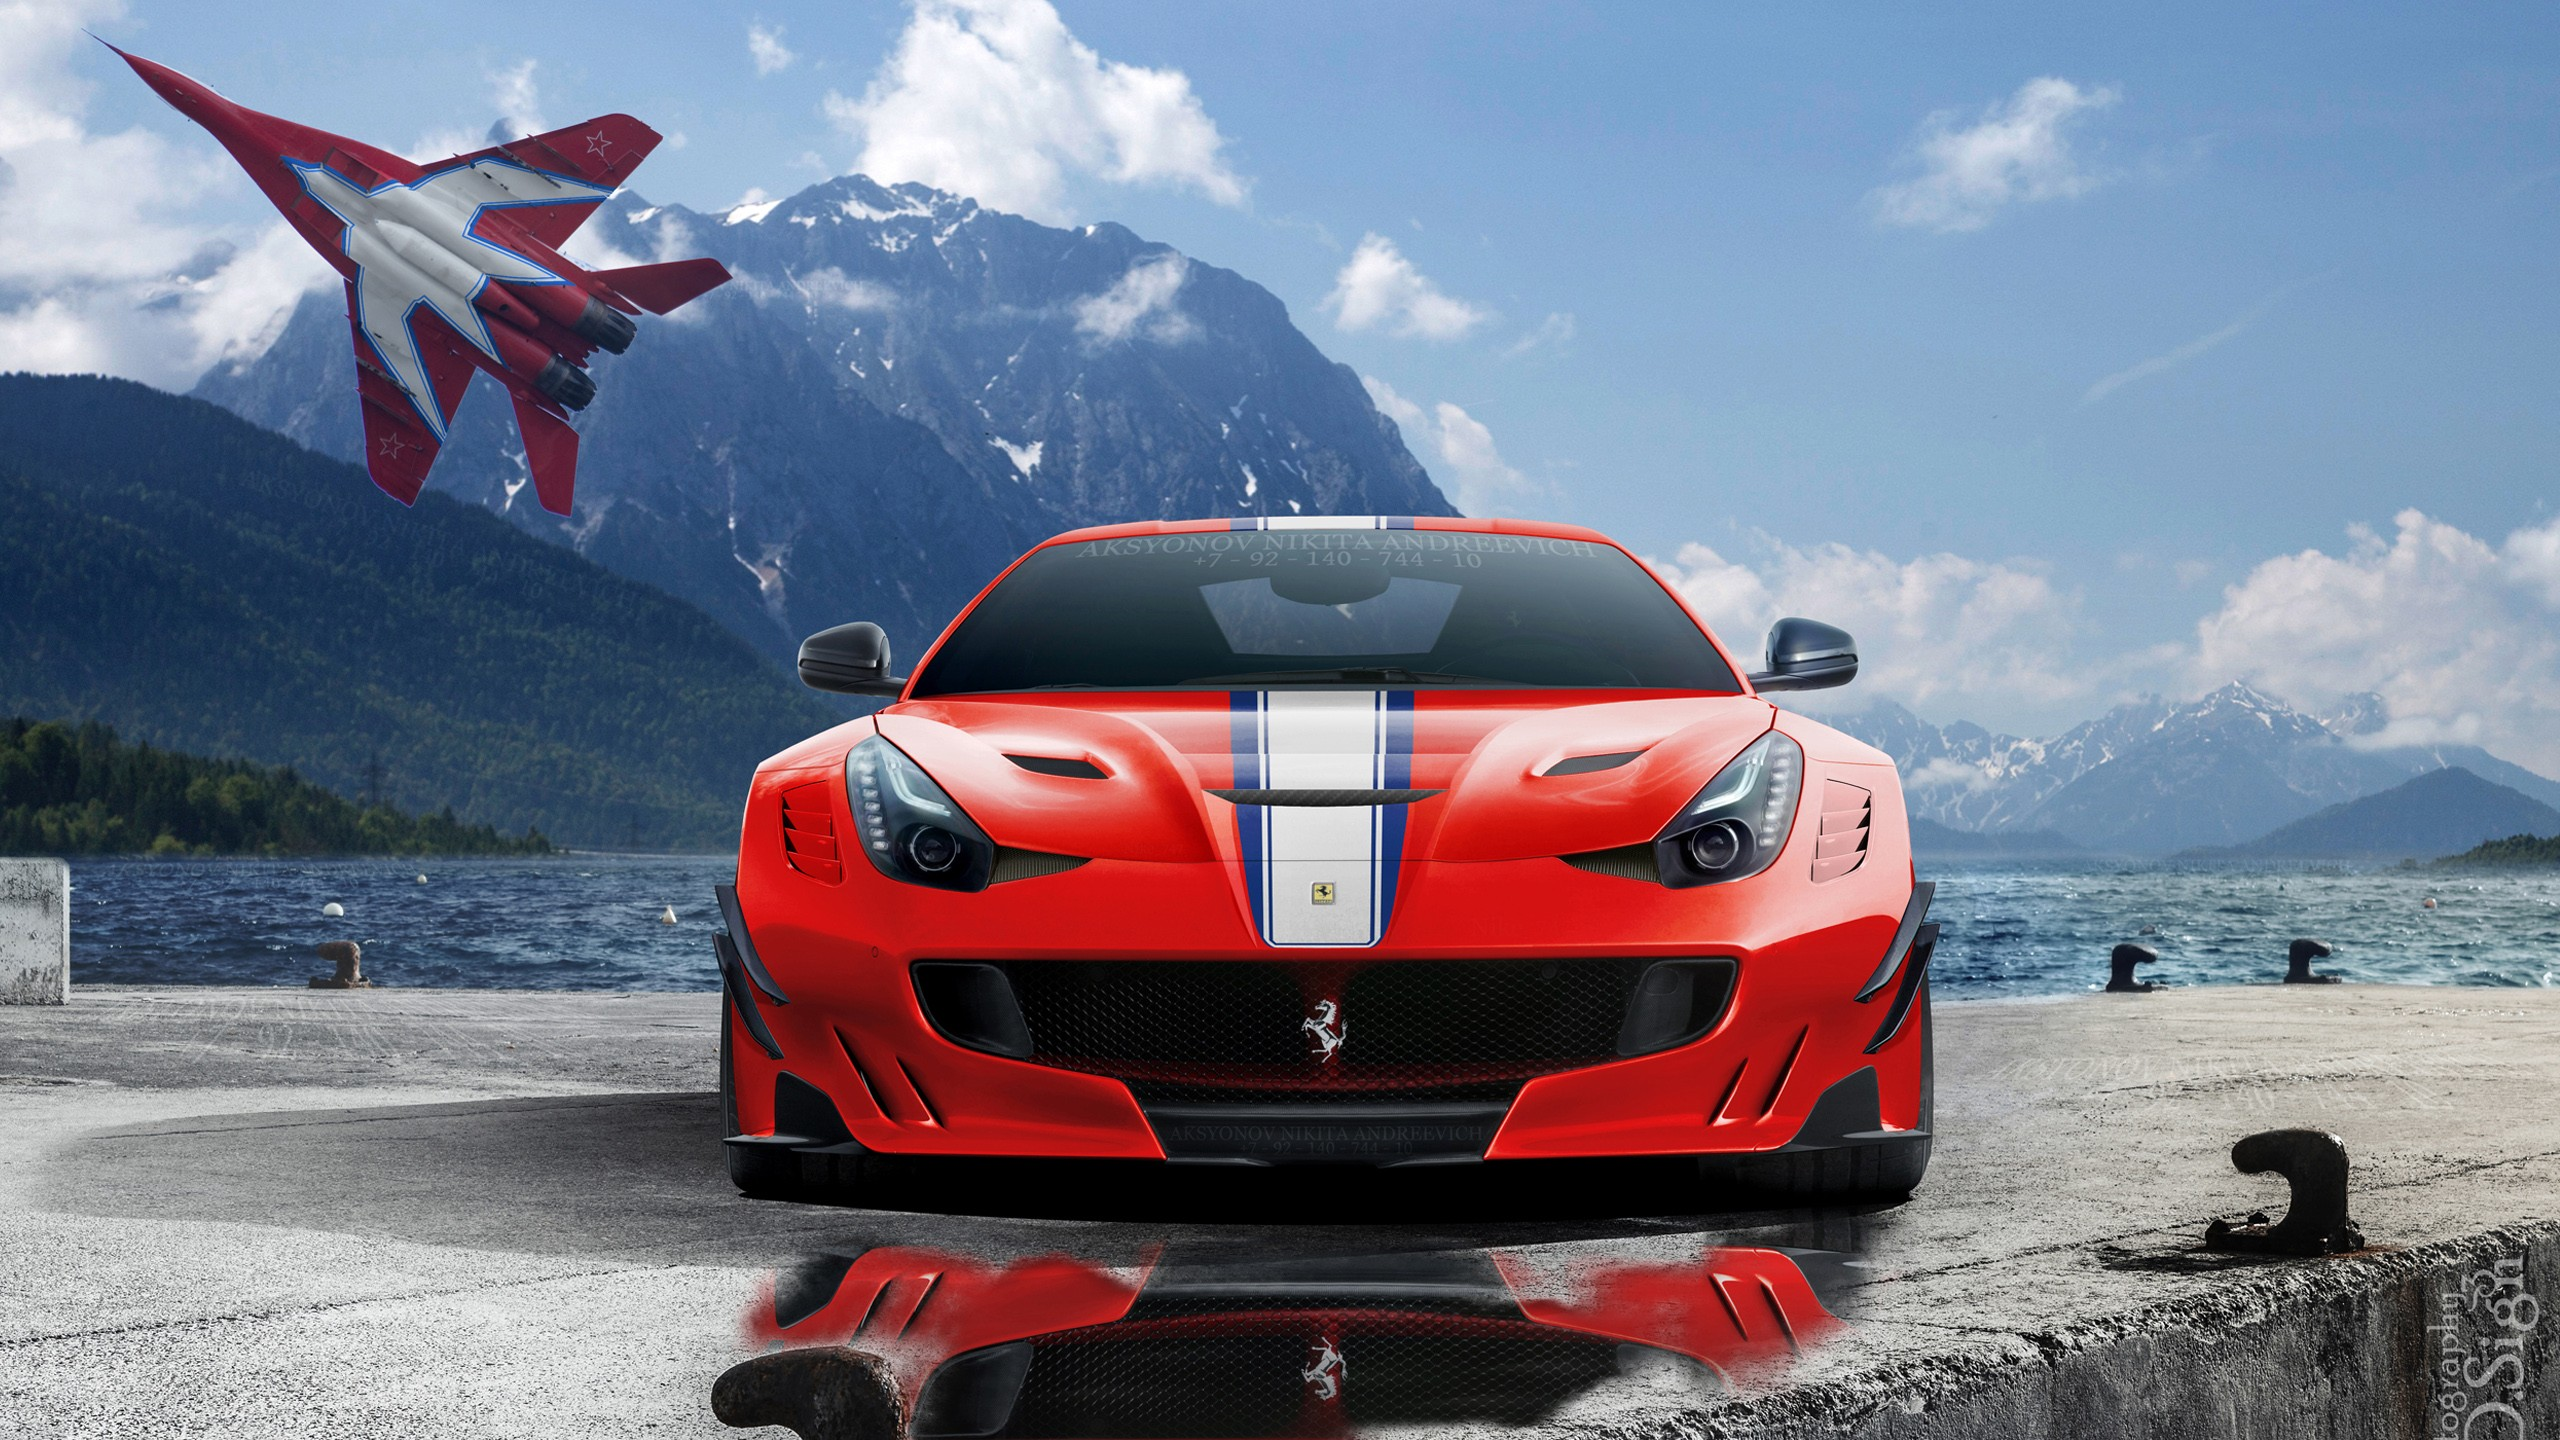 Cars Hd Wallpapers 1080p Lamborghini F12 Ferrari F12tdf Speciale Wallpaper Hd Car Wallpapers